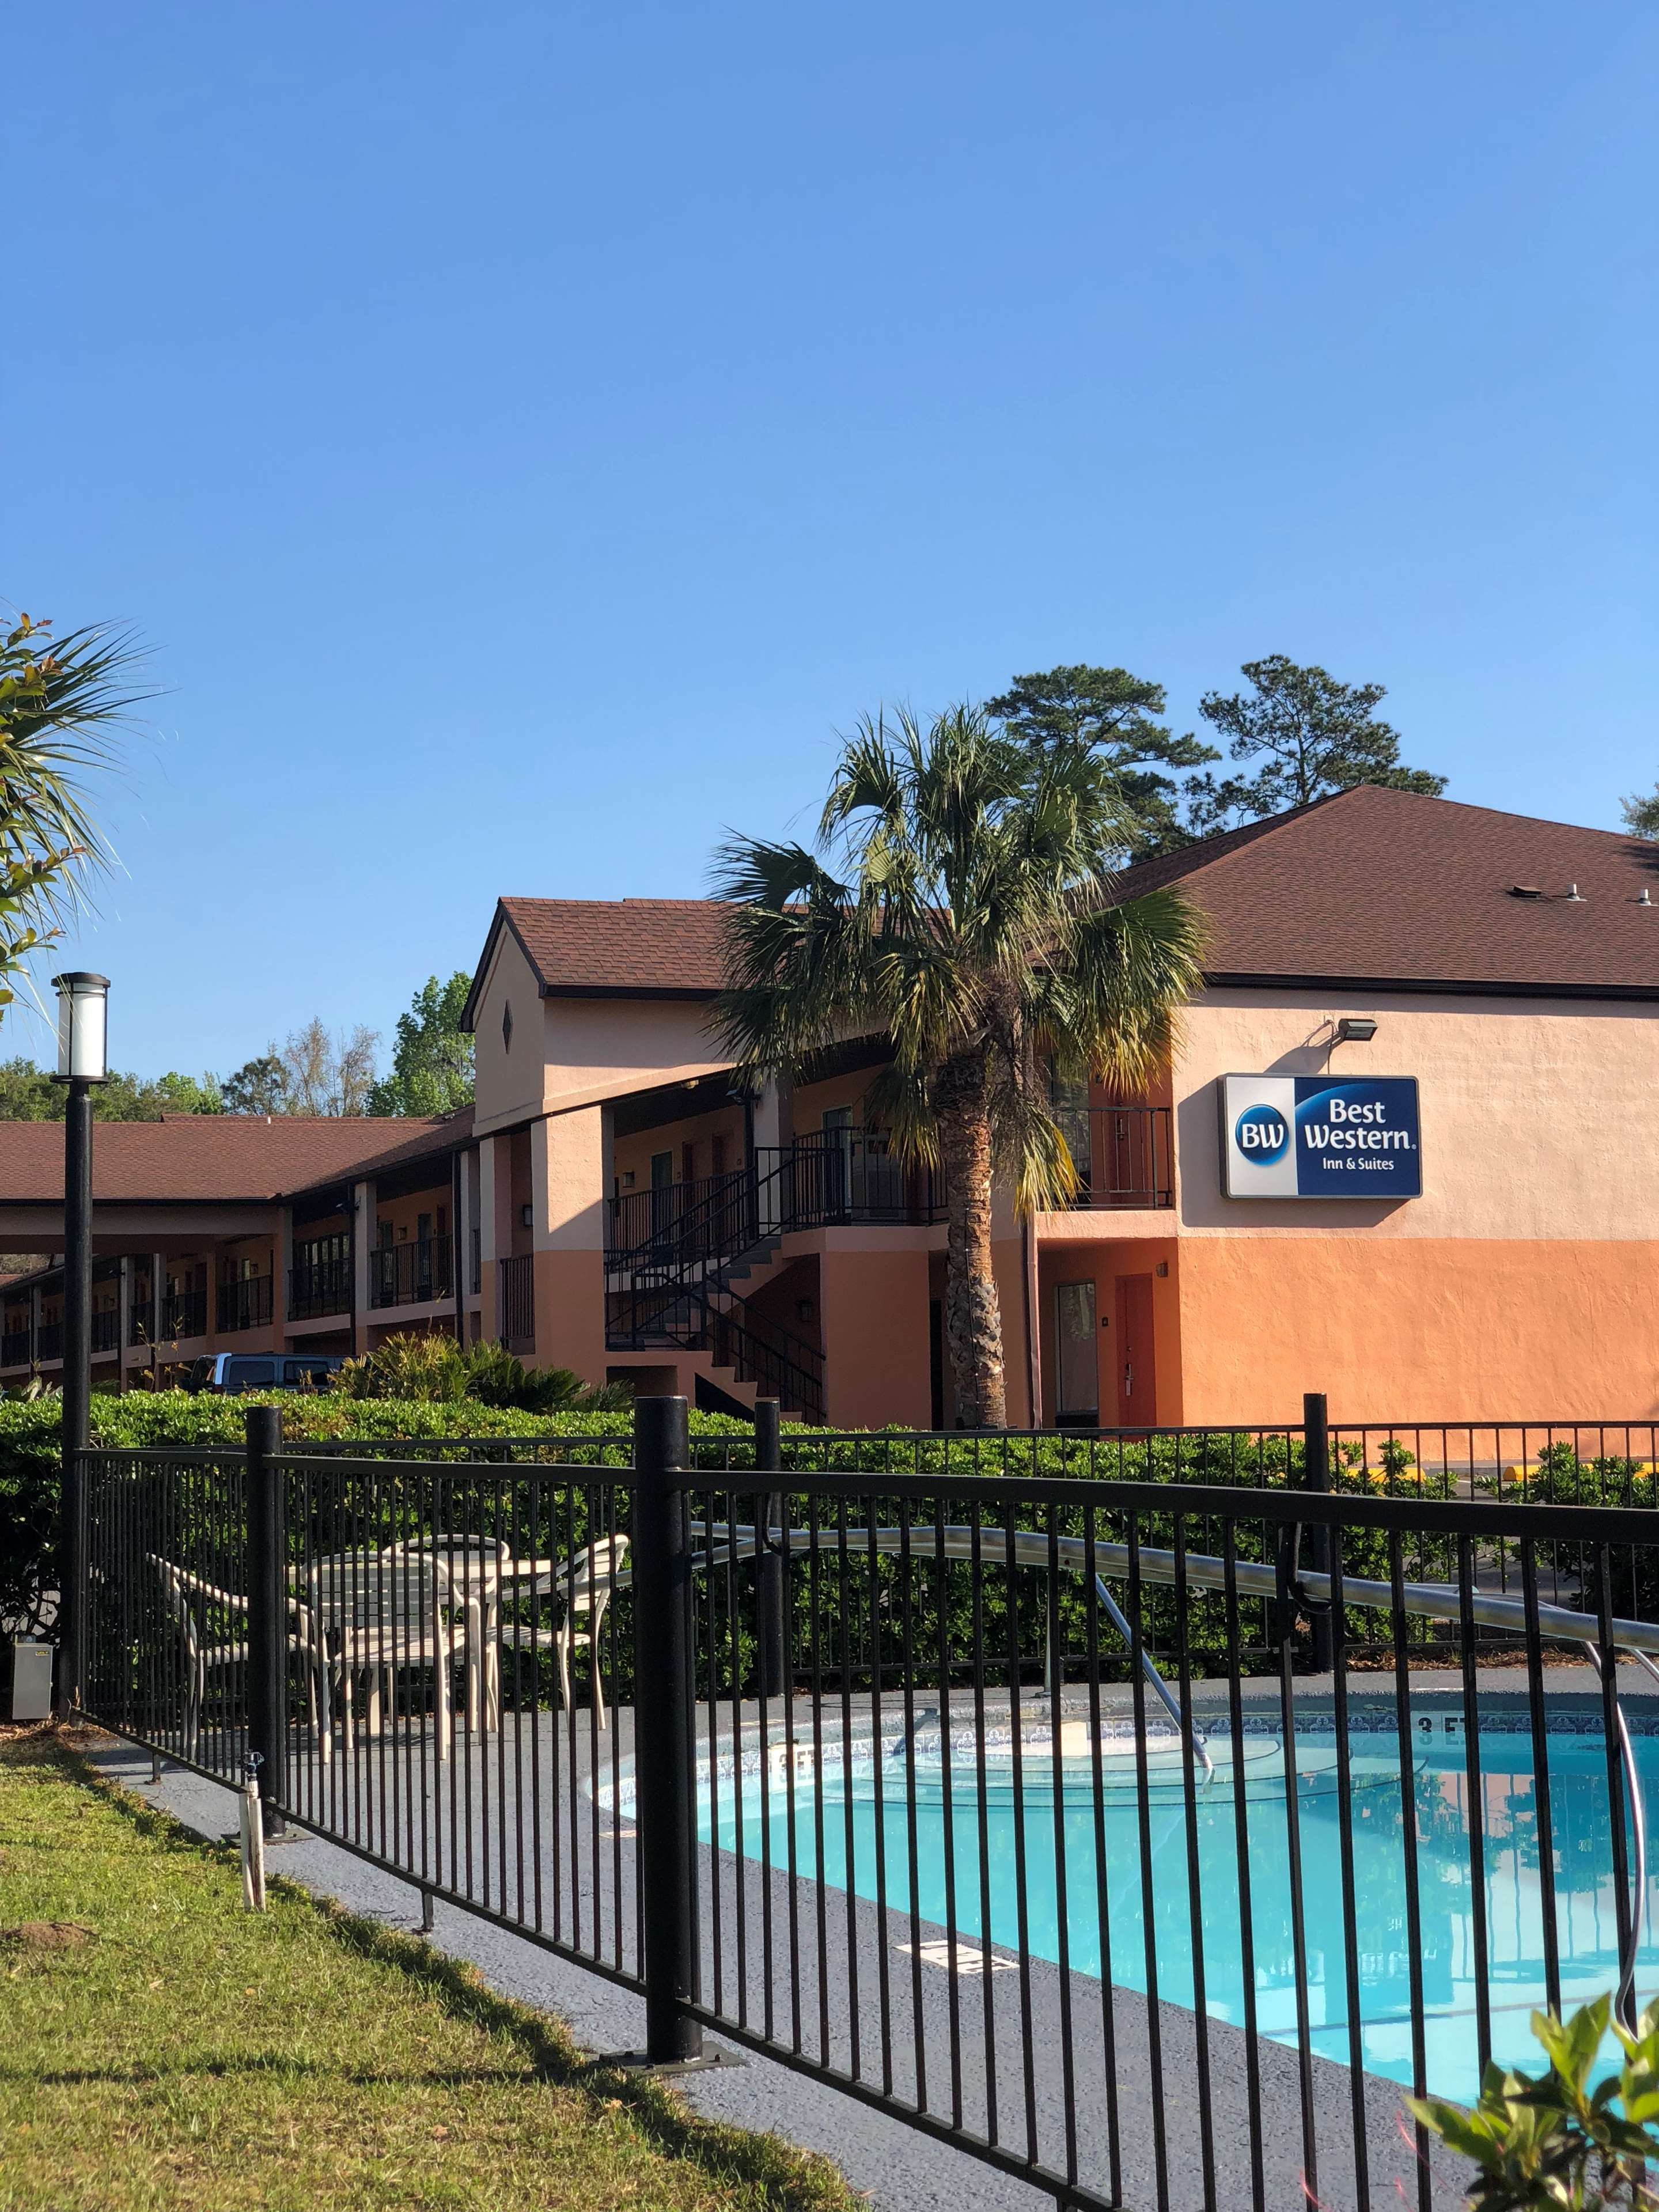 Best Western Tallahassee-Downtown Inn & Suites image 7